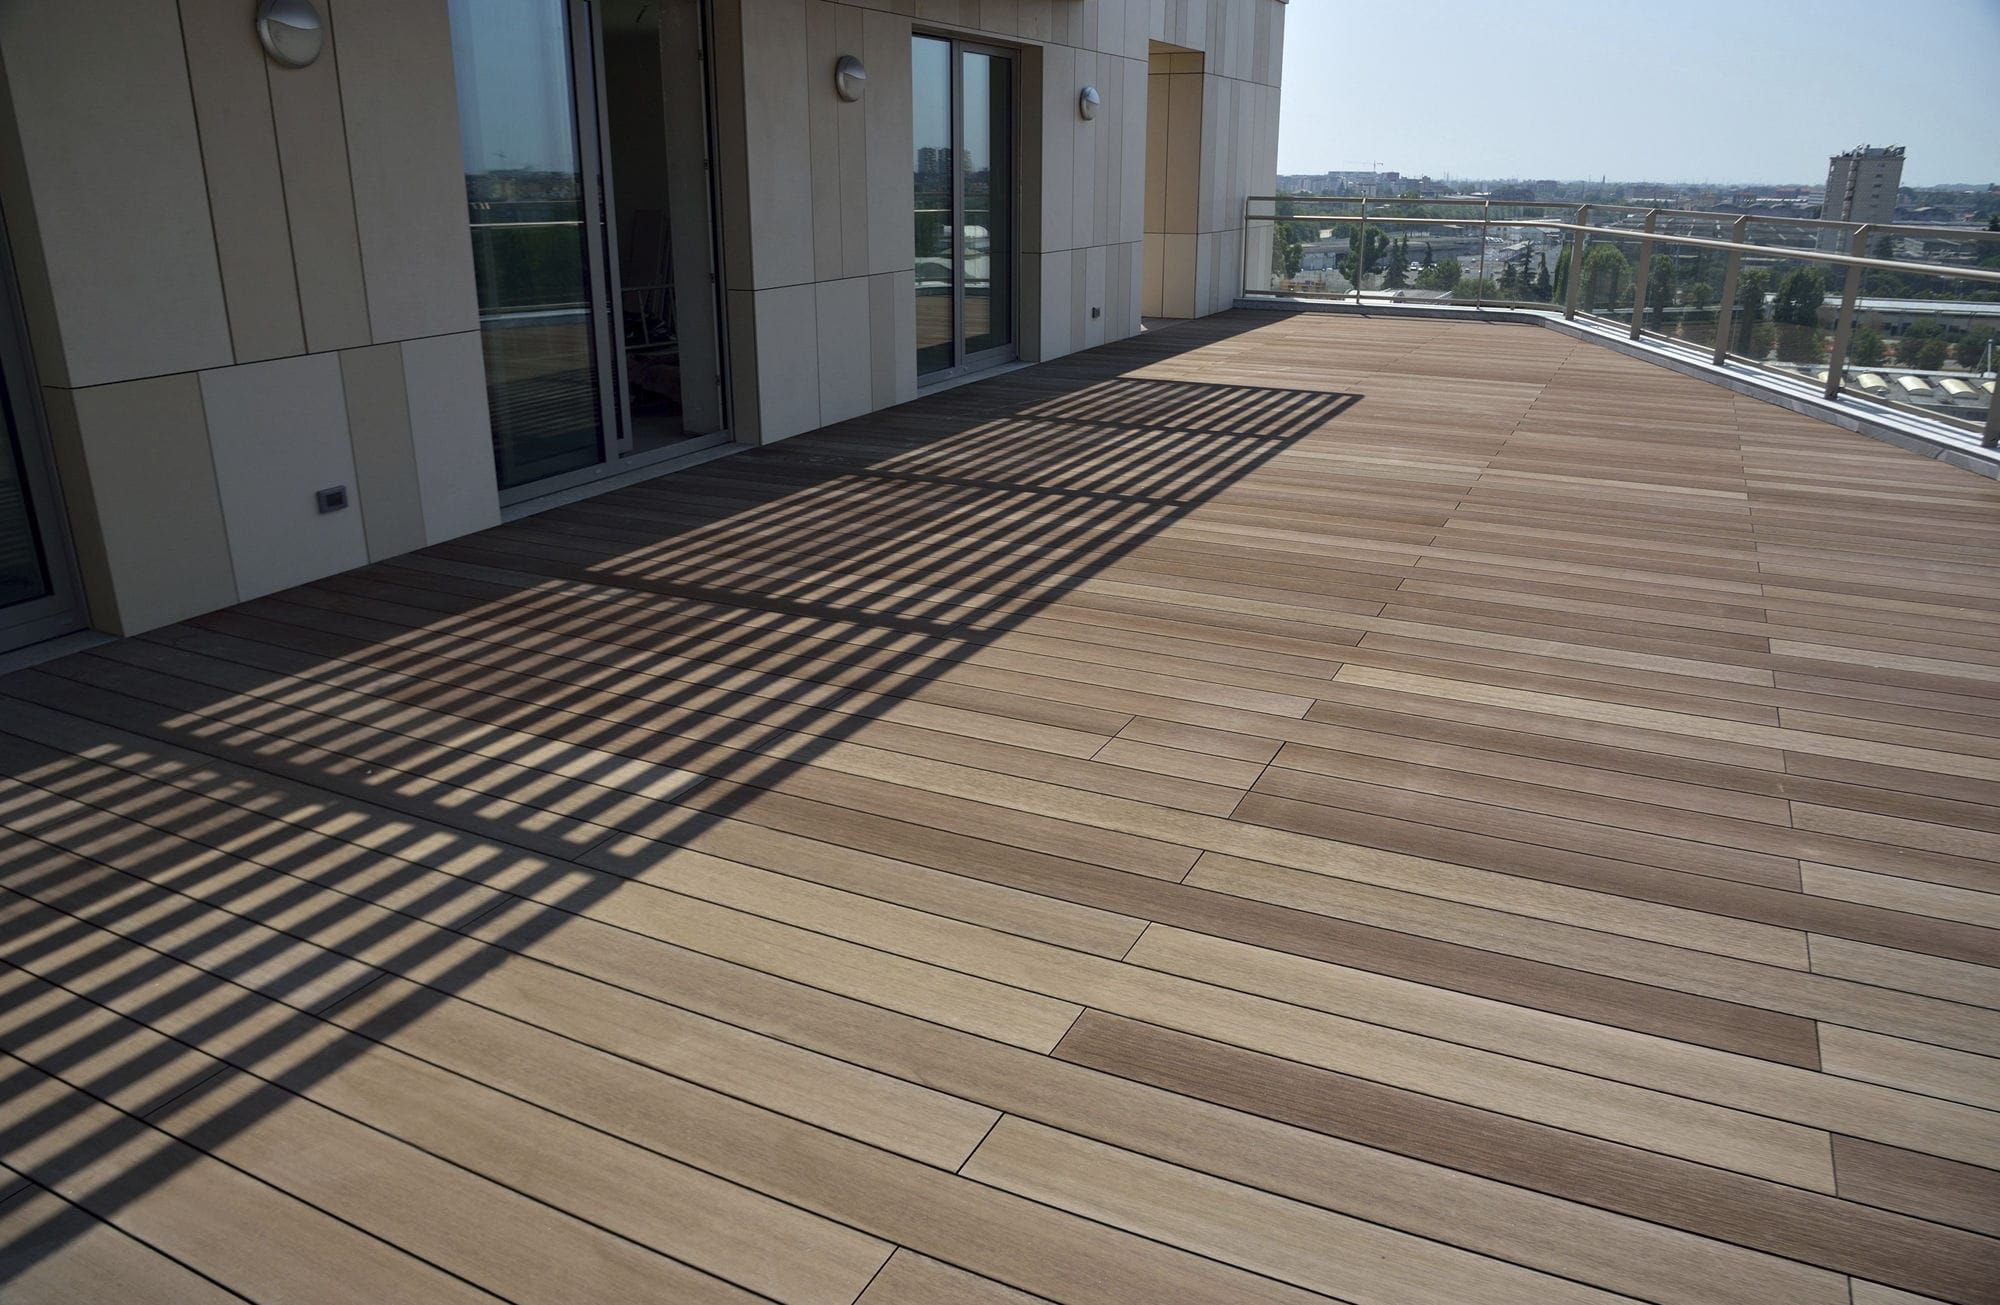 Laminate Exterior Decking 84 Lumber Pvc Deck Railing Can Composite Decking Be Used As Siding Outdoor Flooring Composite Decking Deck